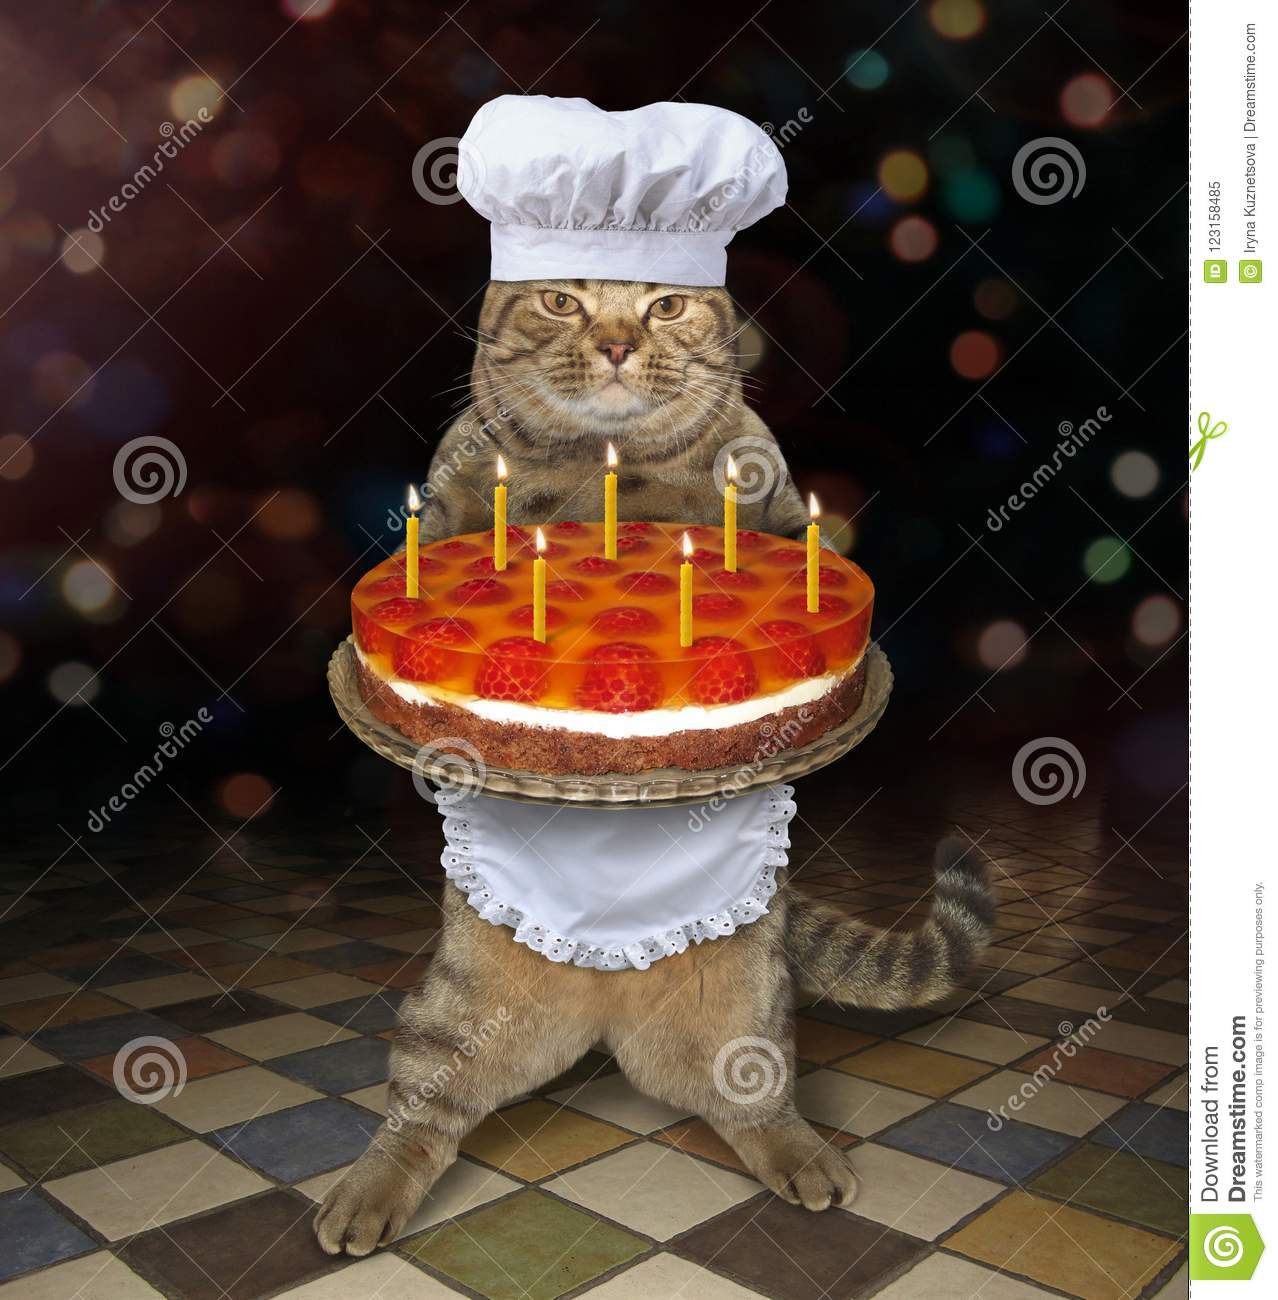 Cat Holds A Birthday Cake With Candles Stock Image Image Of Cake